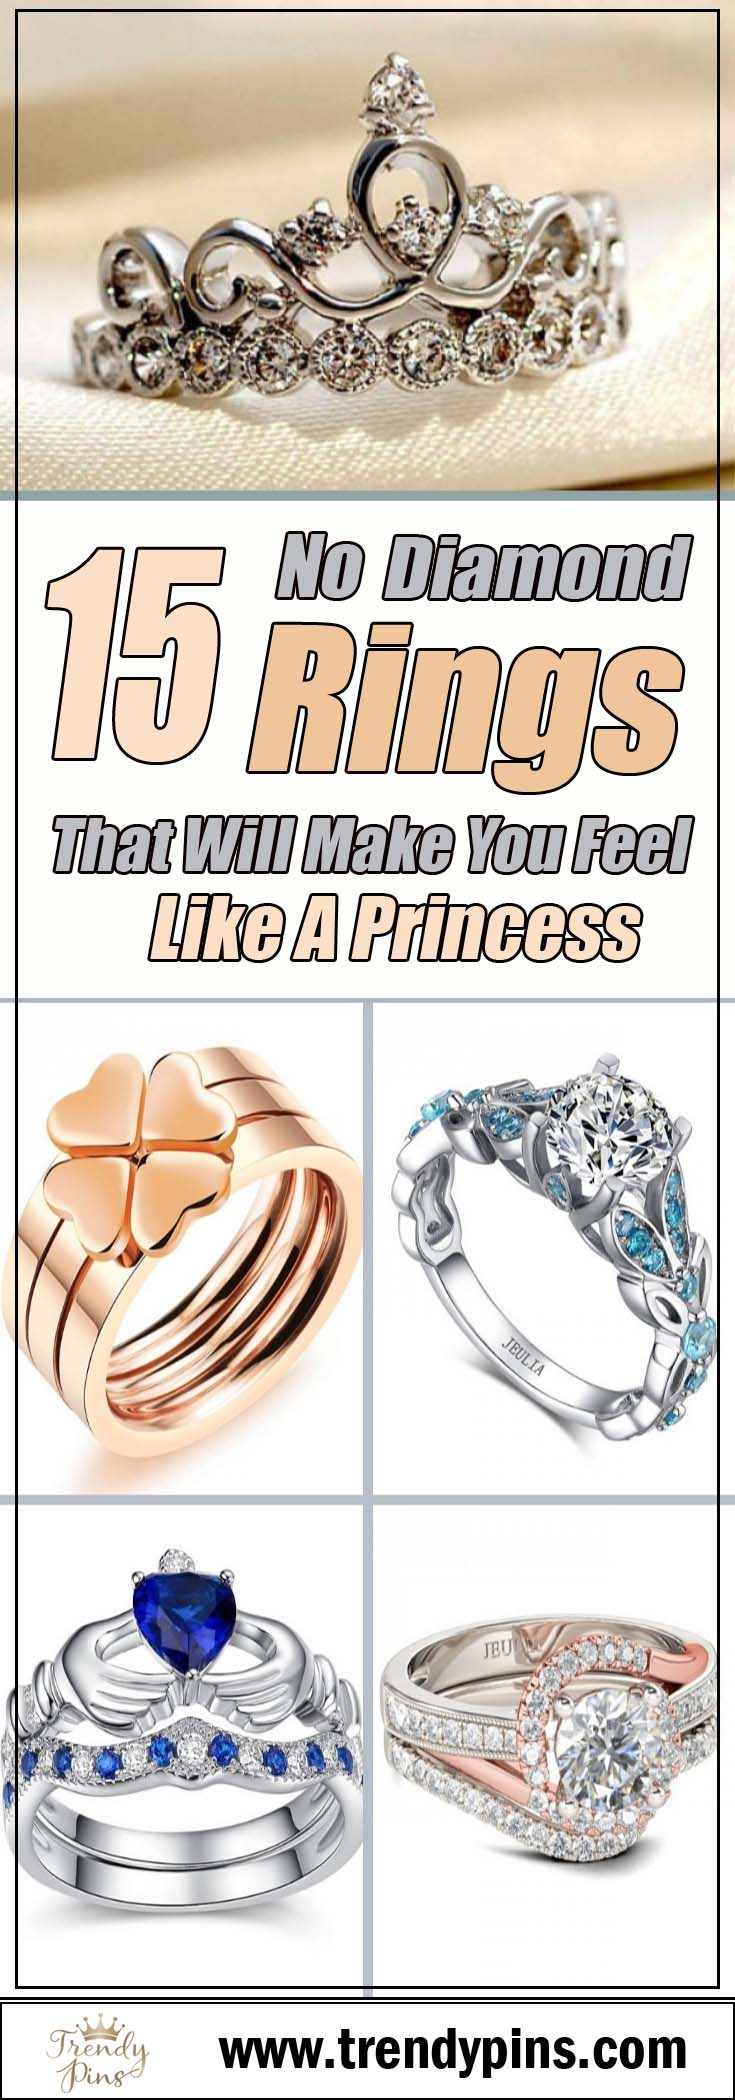 15 no diamond rings that will make you feel like a princess